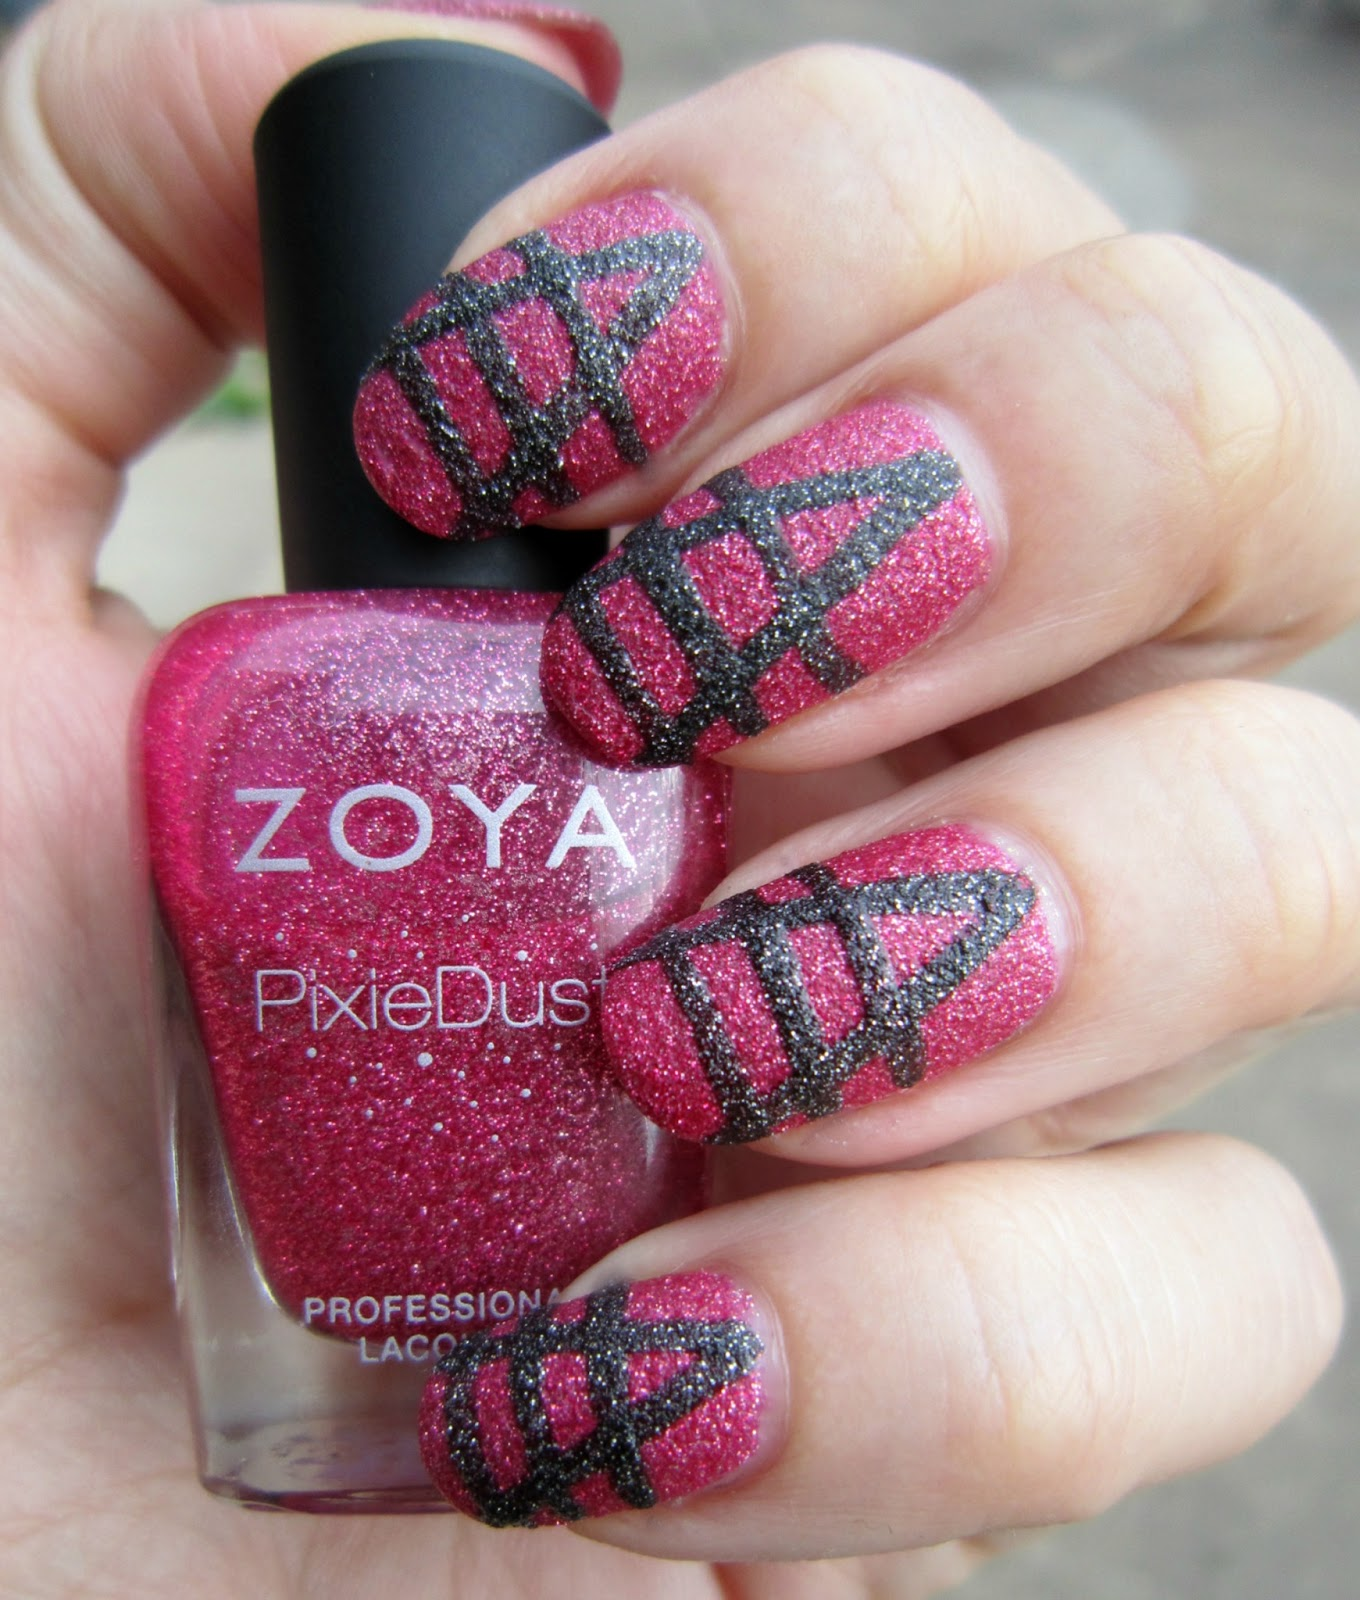 concrete and nail polish another art deco nail art attempt with zoya pixie dusts. Black Bedroom Furniture Sets. Home Design Ideas